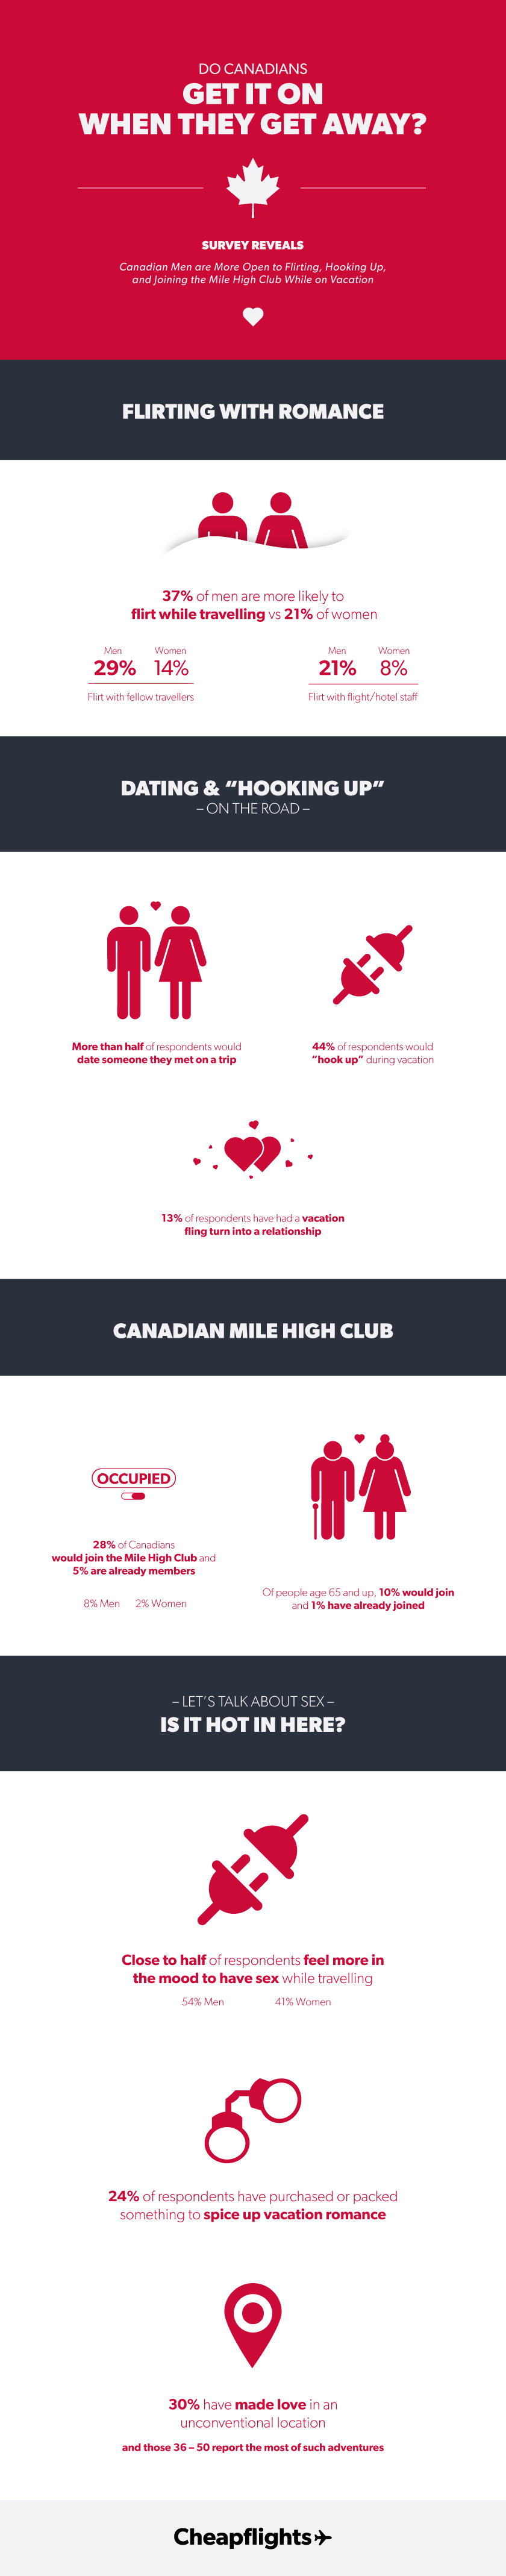 Love, lust and travel: A survey of Canadian romance on the road